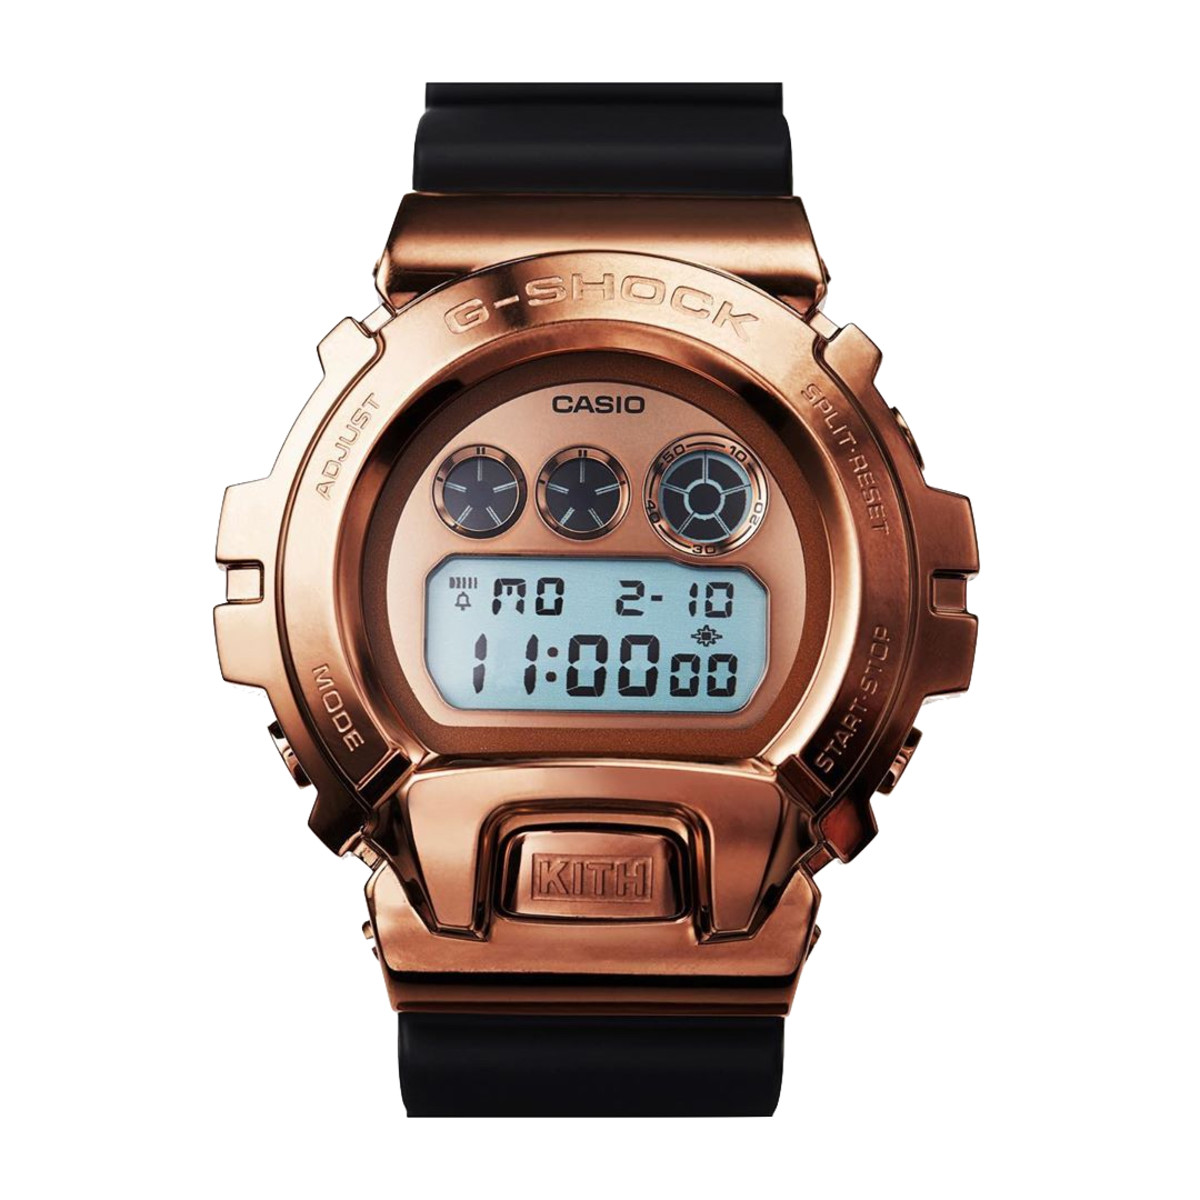 Kith x Casio G-Shock 6900